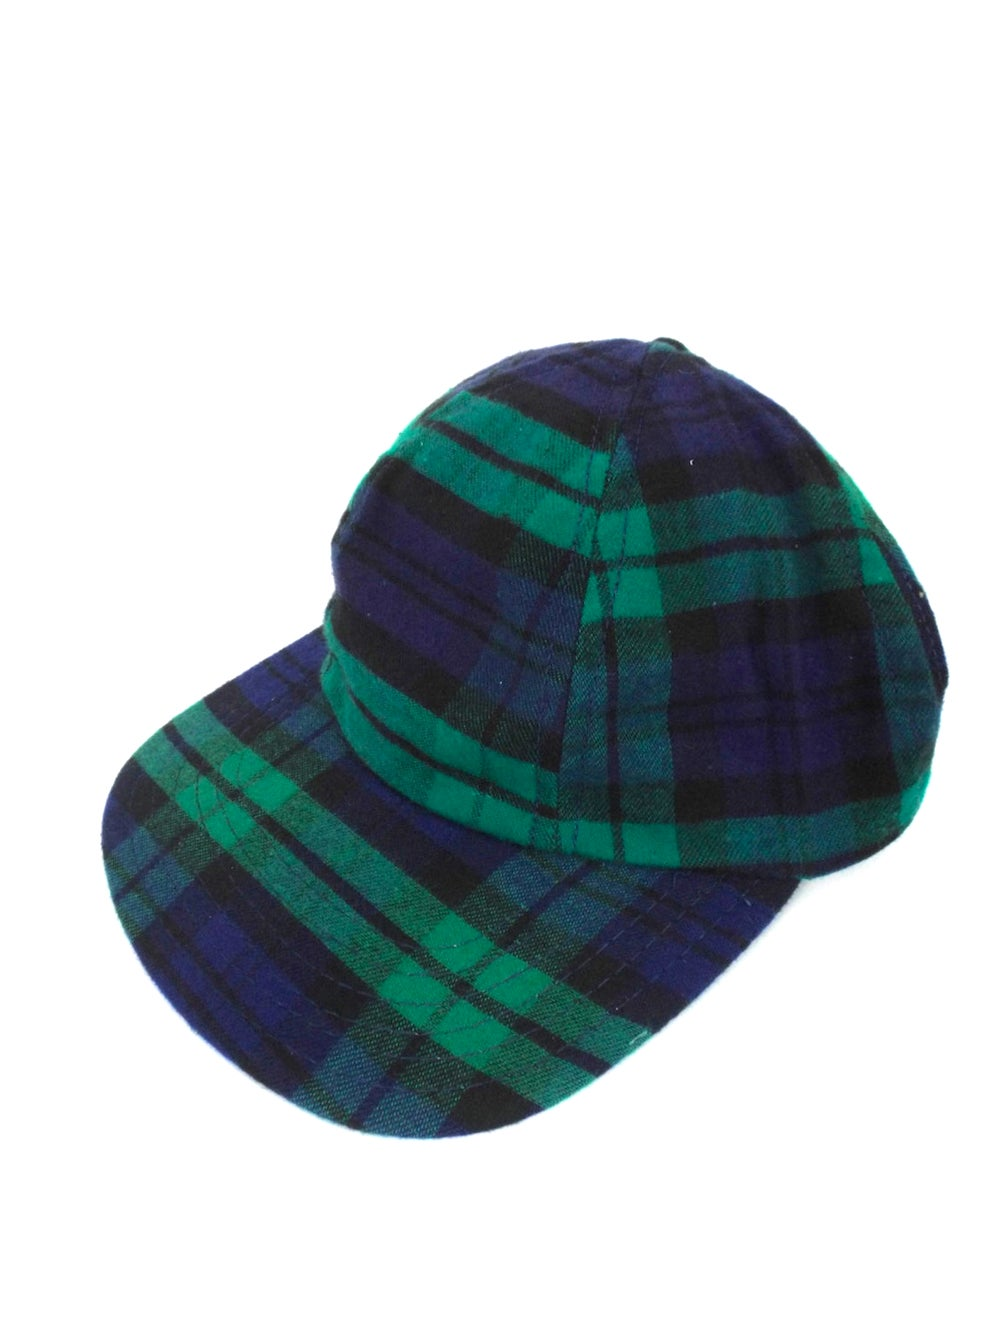 Vintage 90s Blue and Green Plaid Print Snapback